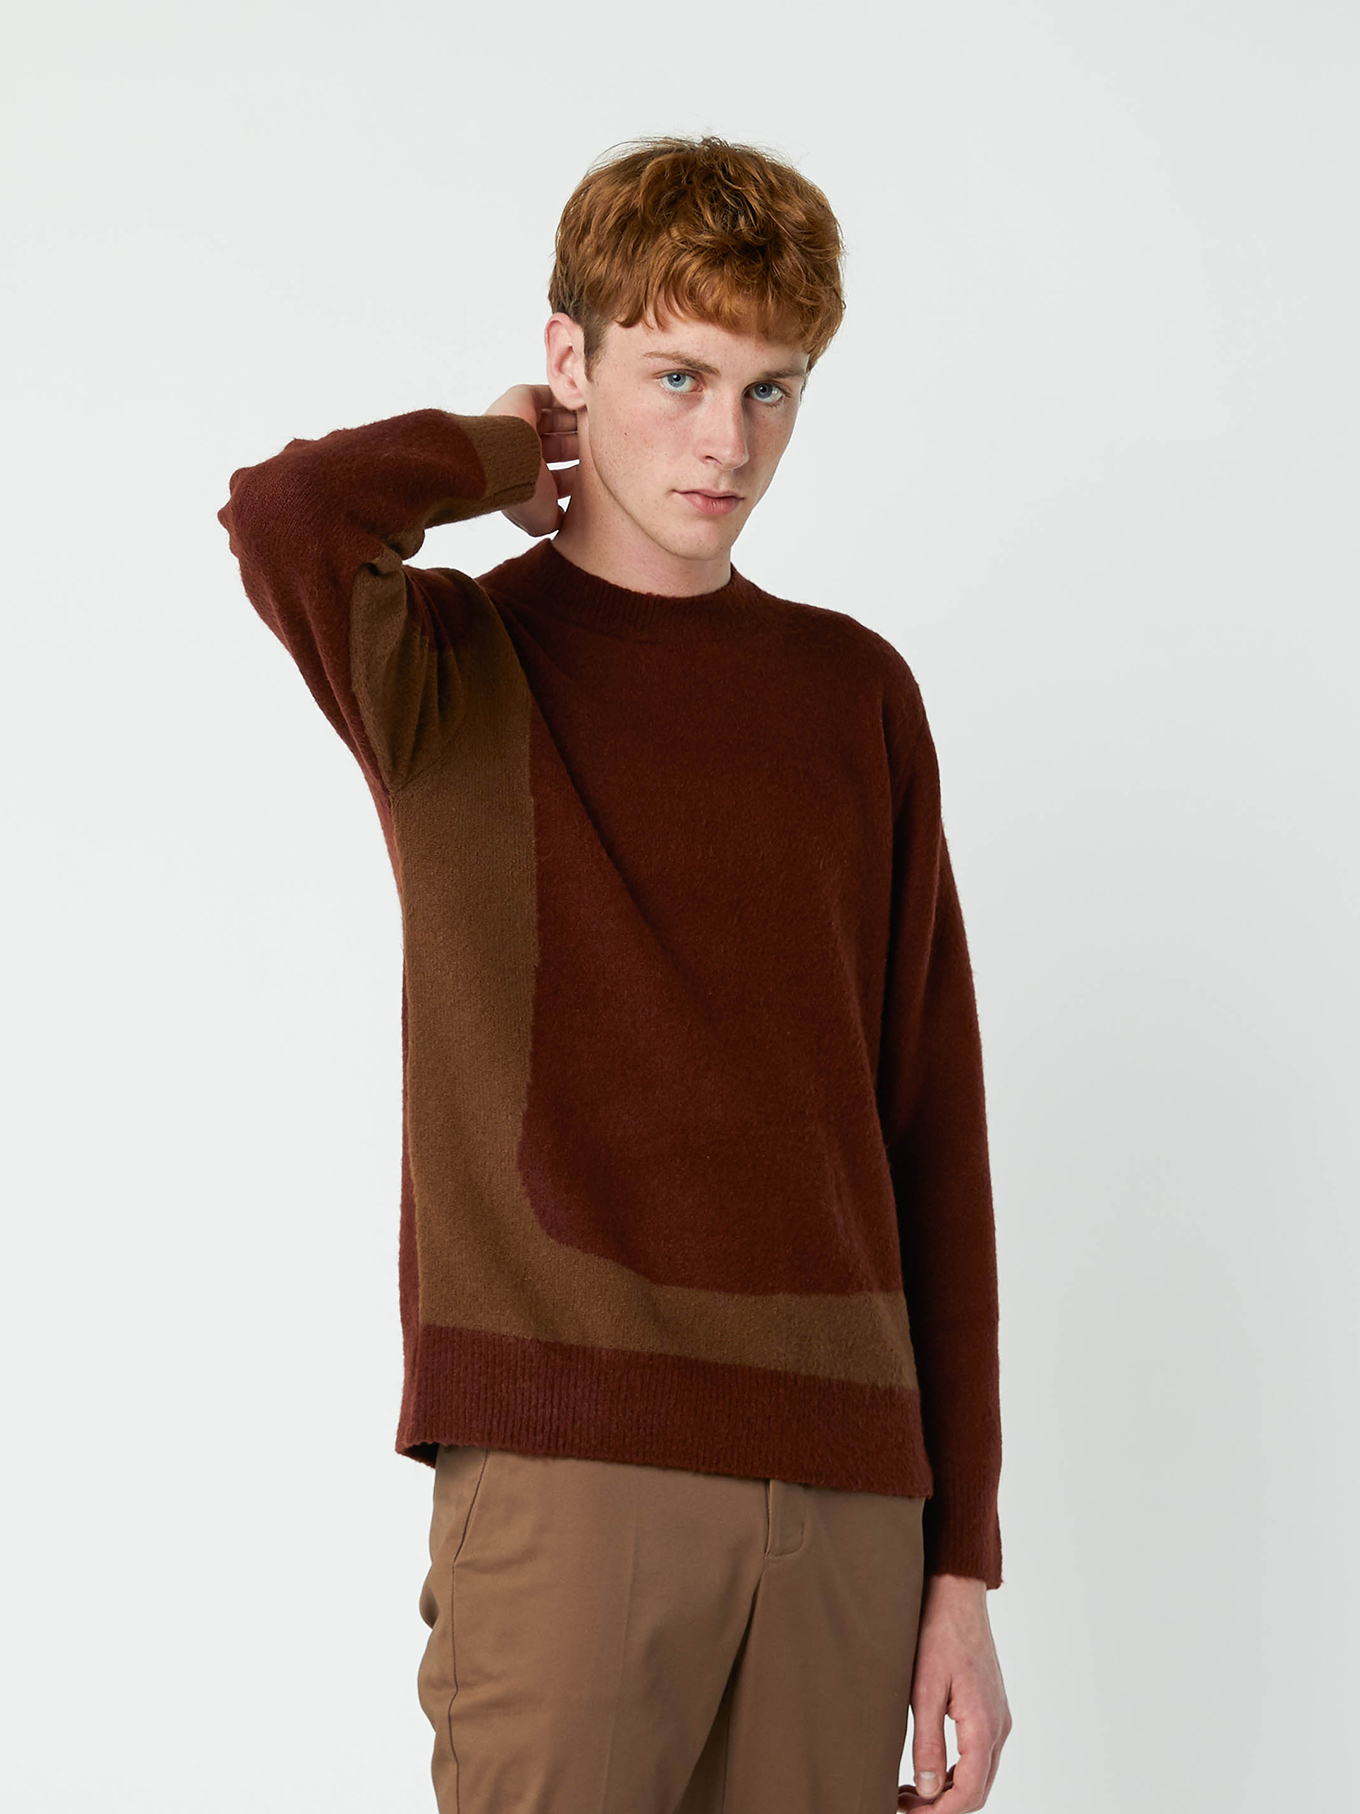 Mens sweater basic casual everyday clothing